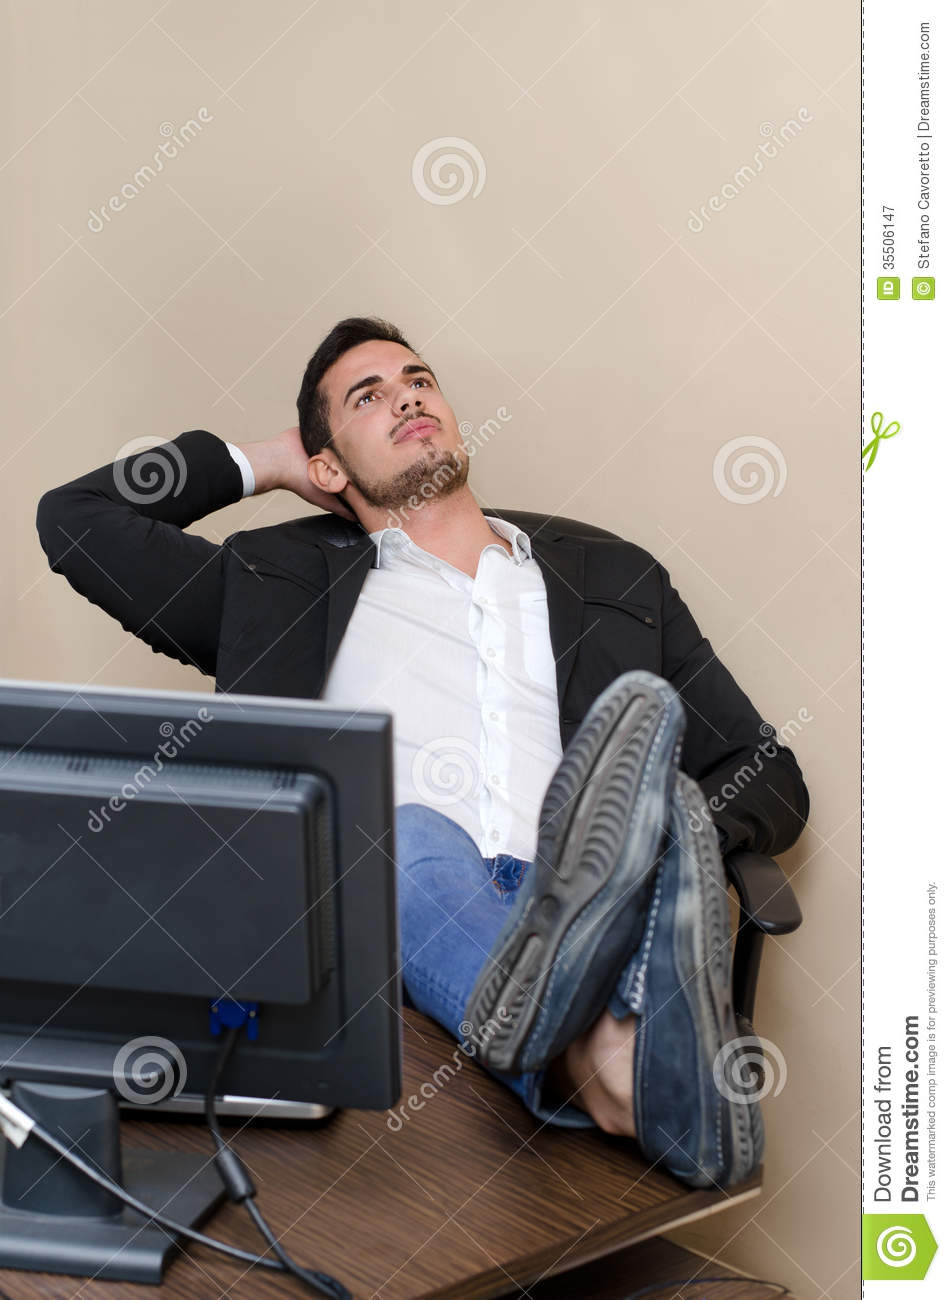 Lazy Office Worker Resting Feet On The Desk Royalty Free